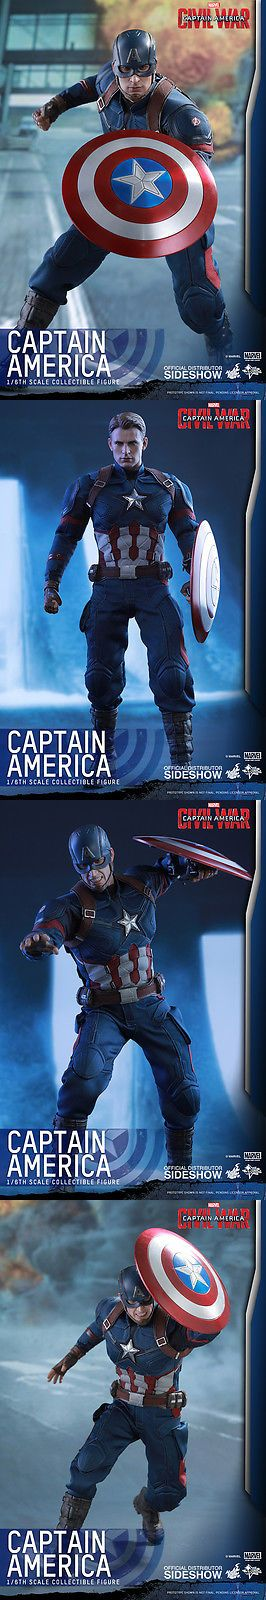 Toys And Games: Hot Toys Captain America Civil War Captain America 1/6 Scale 12 Figure In Stock -> BUY IT NOW ONLY: $259.99 on eBay!